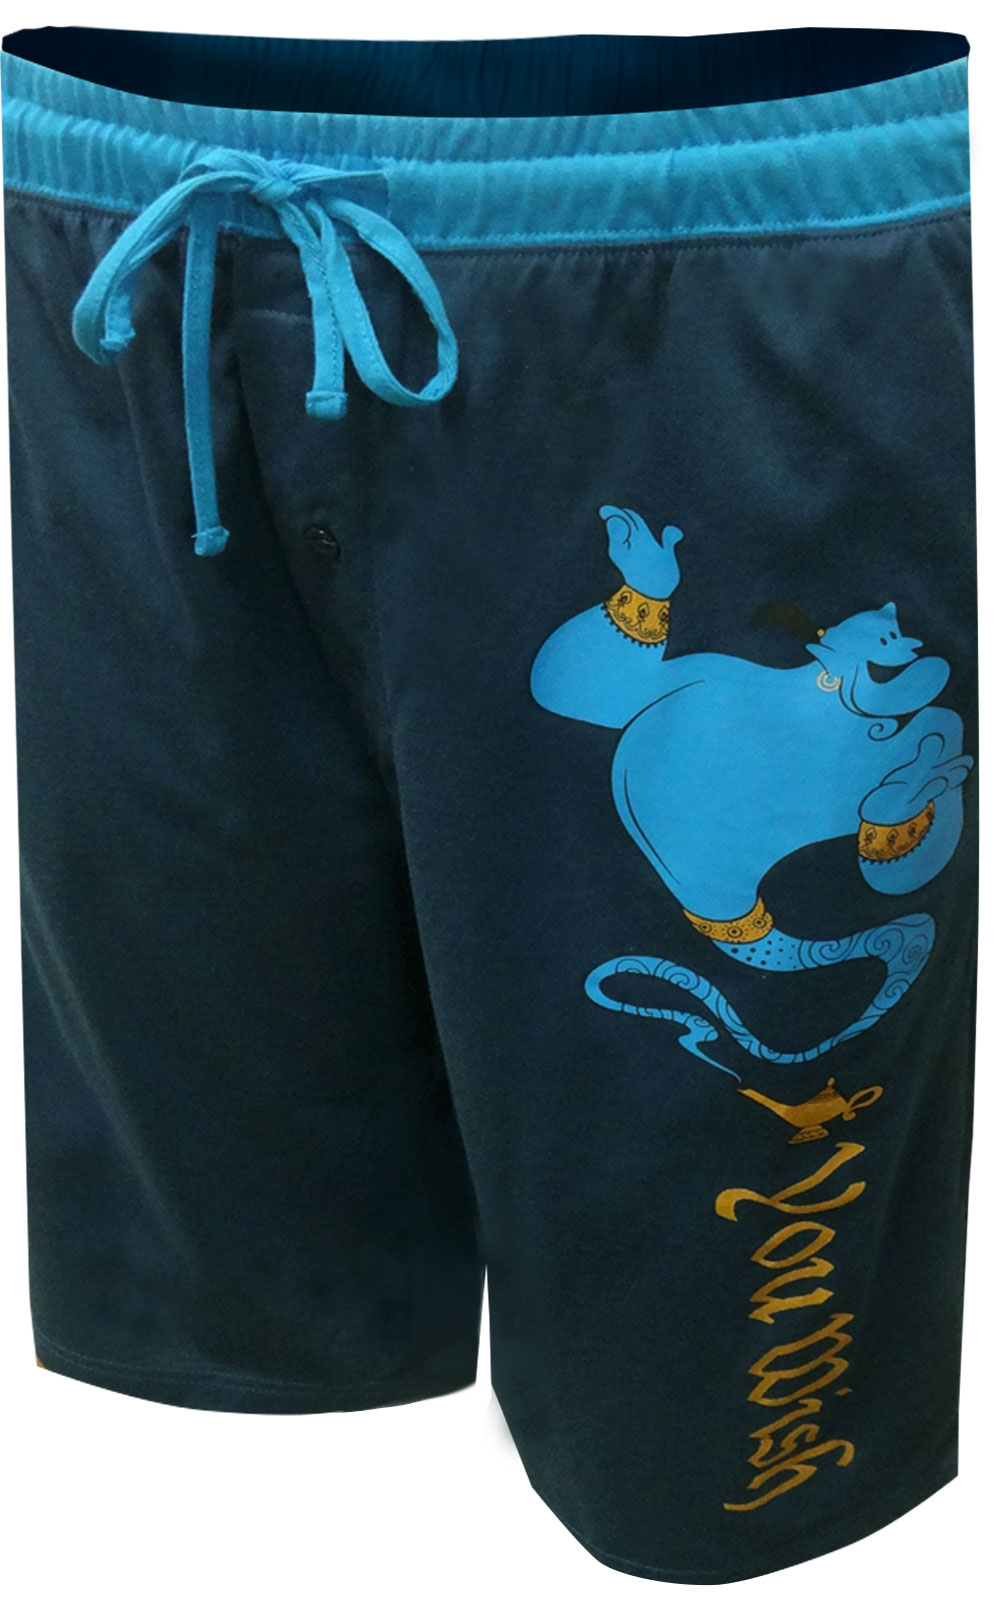 Image of Disney's Aladdin Genie Lounge Shorts for men